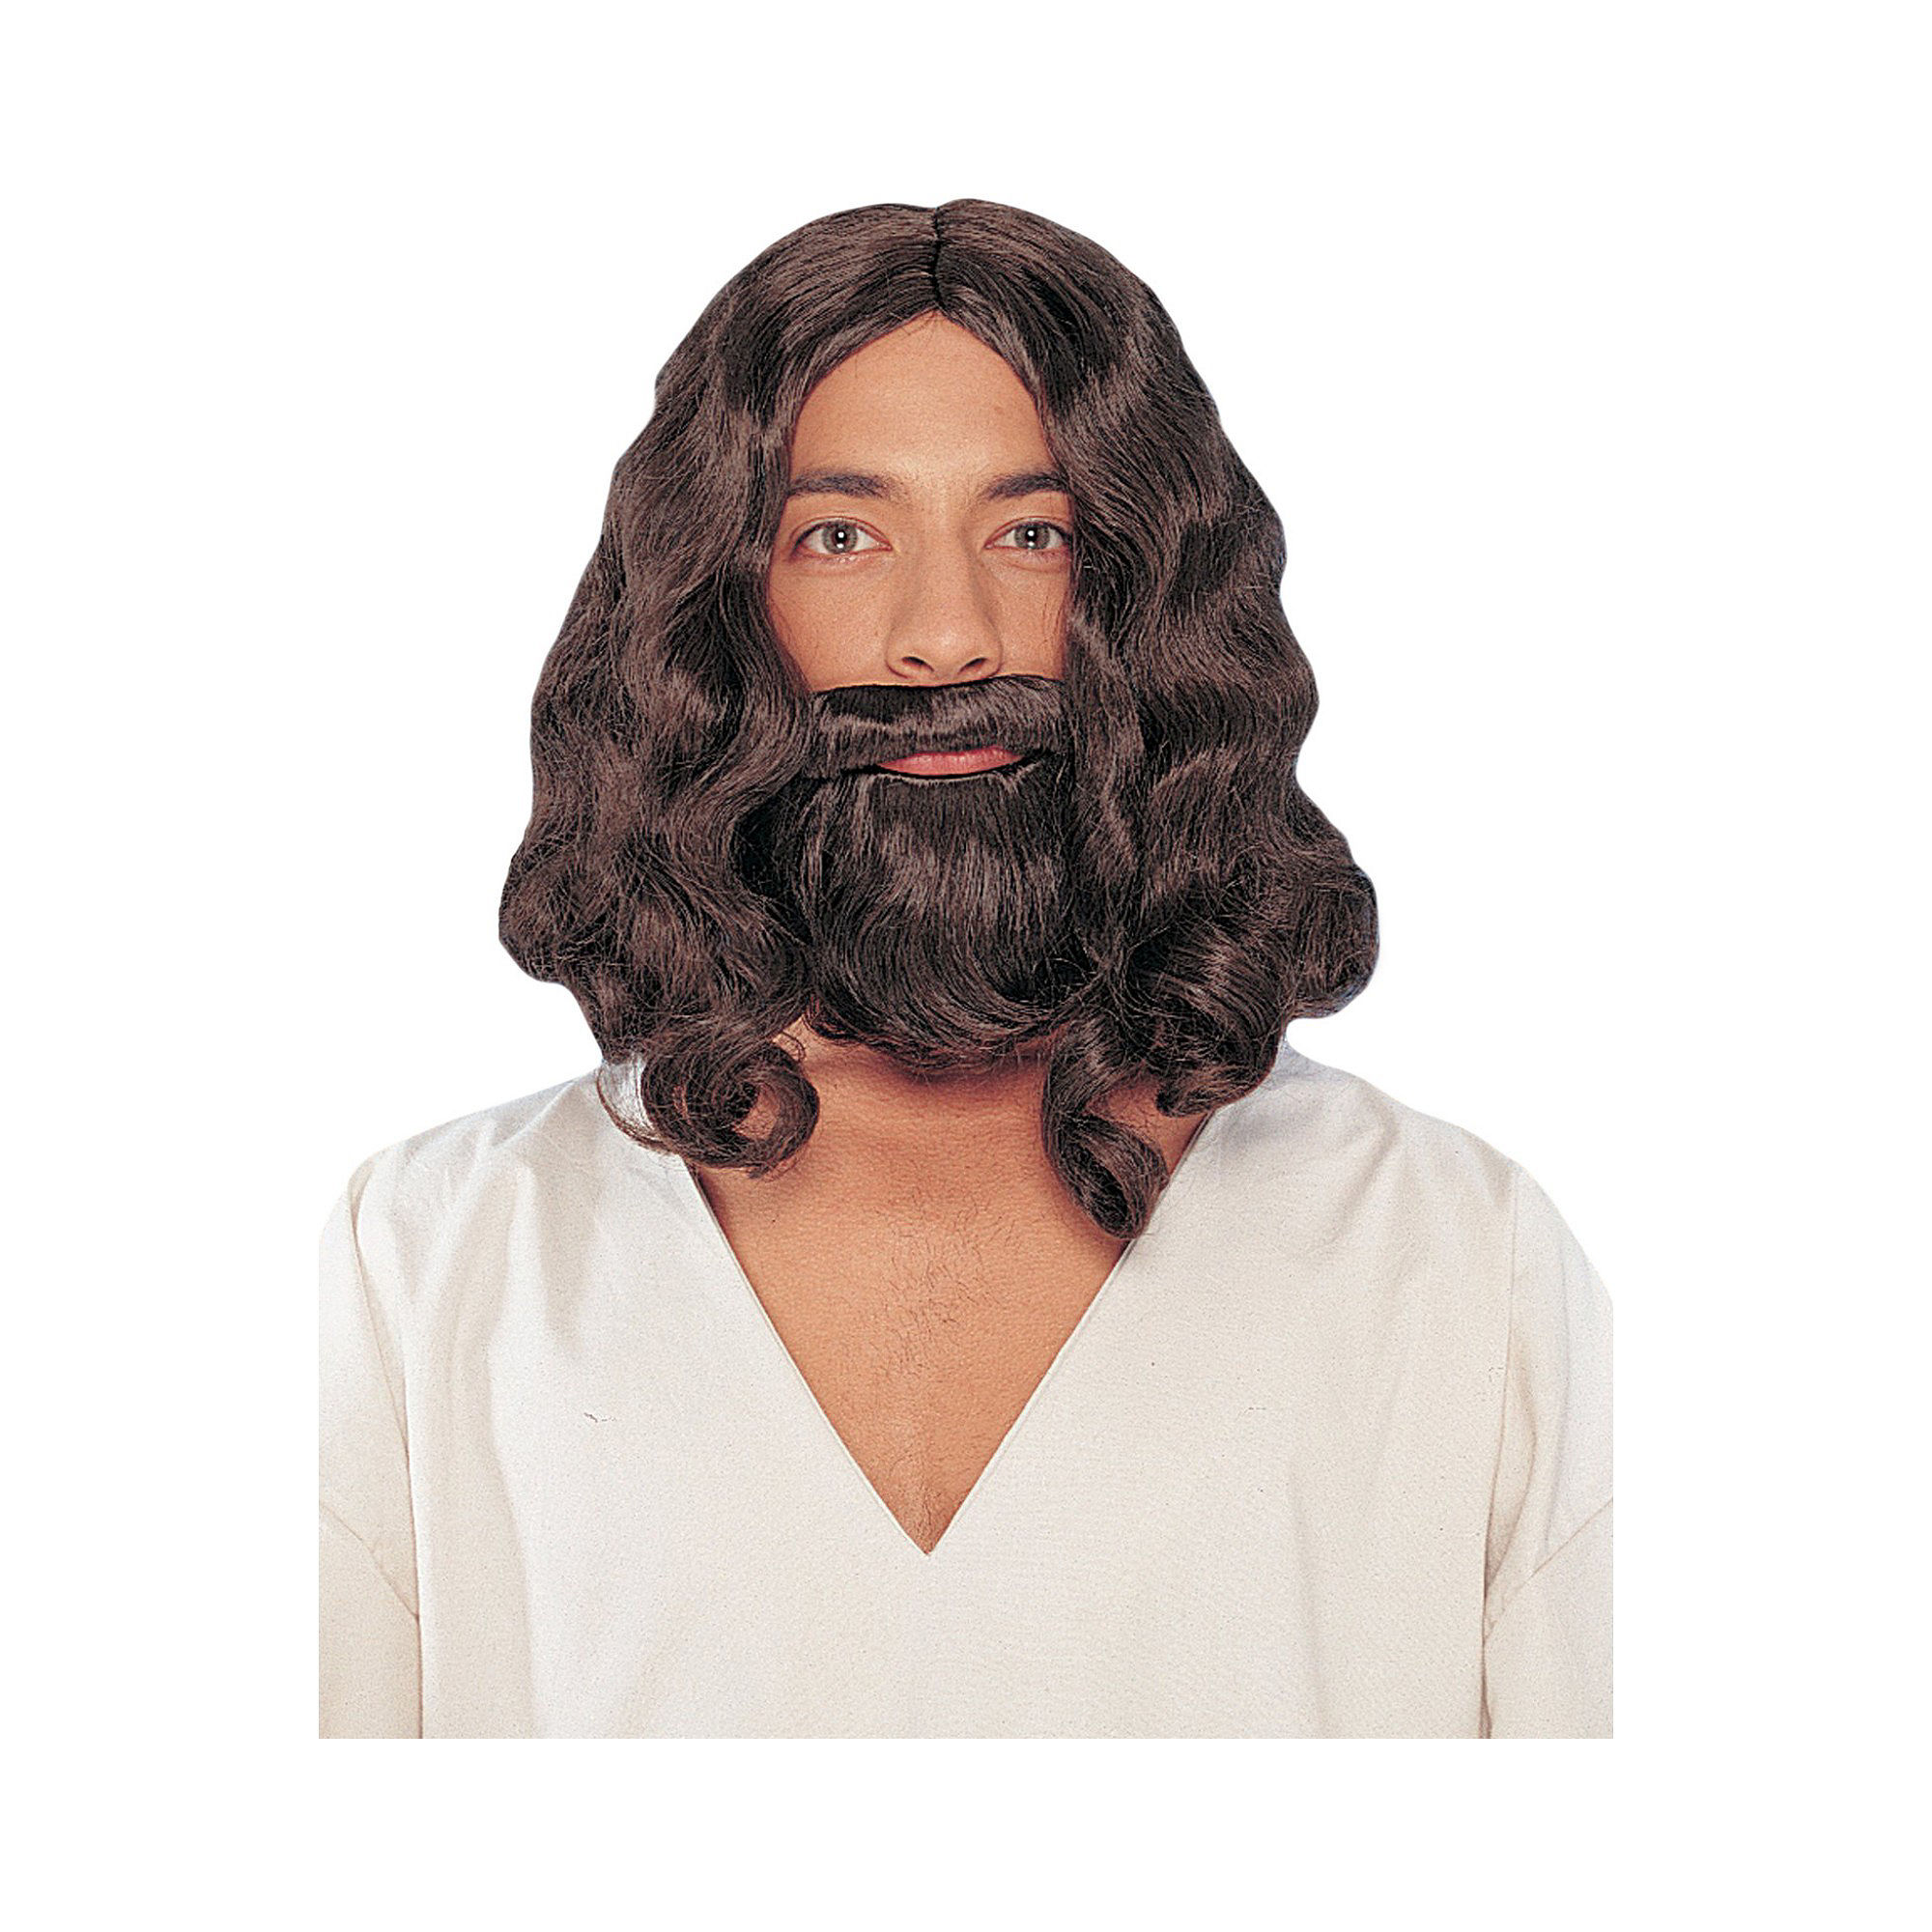 All About Holidays » Biblical Wig & Beard Set Costume ...